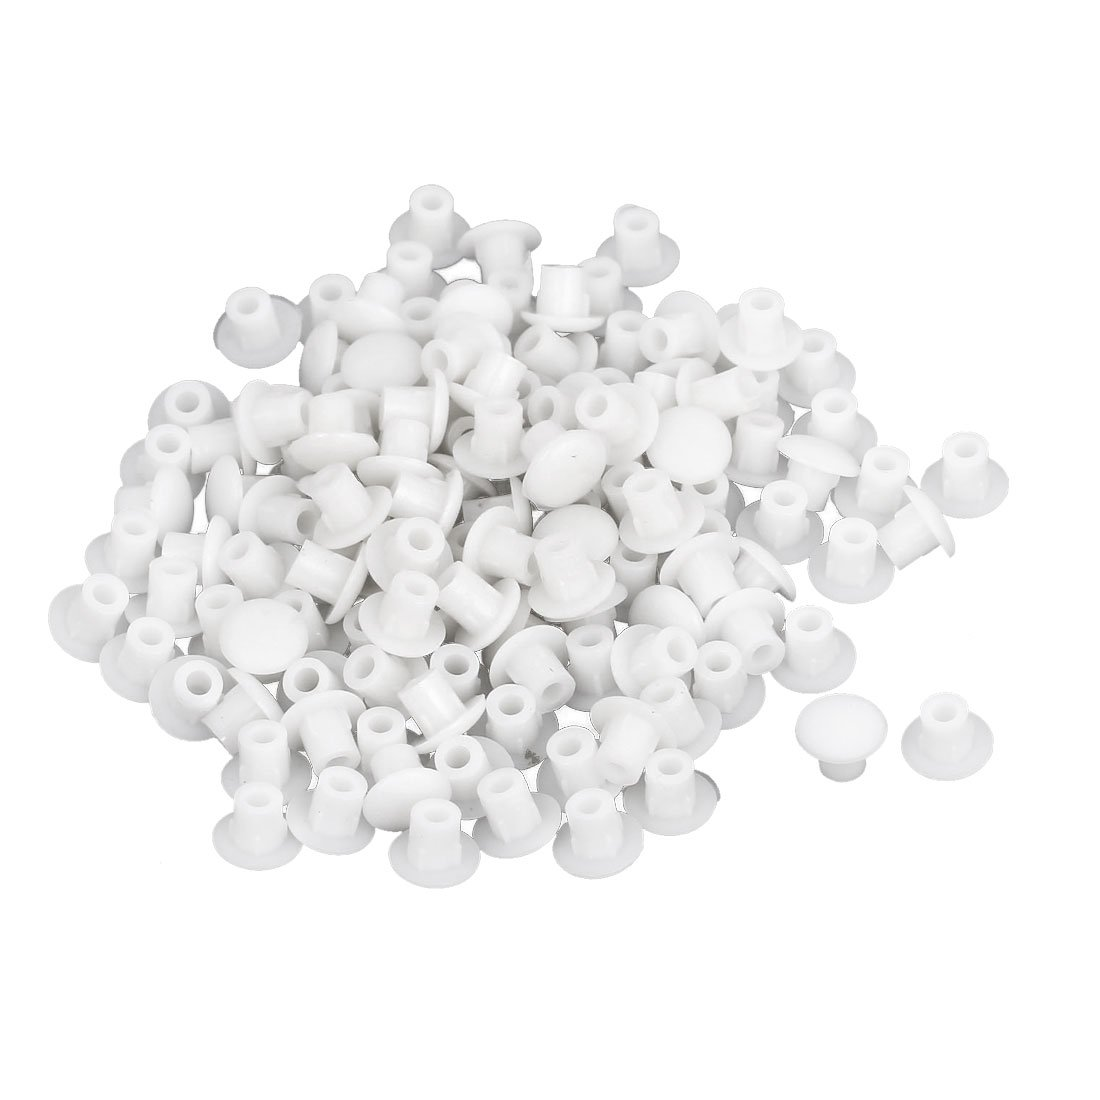 Furniture Plastic 5mm Hole Drilling Cover Plugs Insert 130pcs White uxcell a15081900ux0053